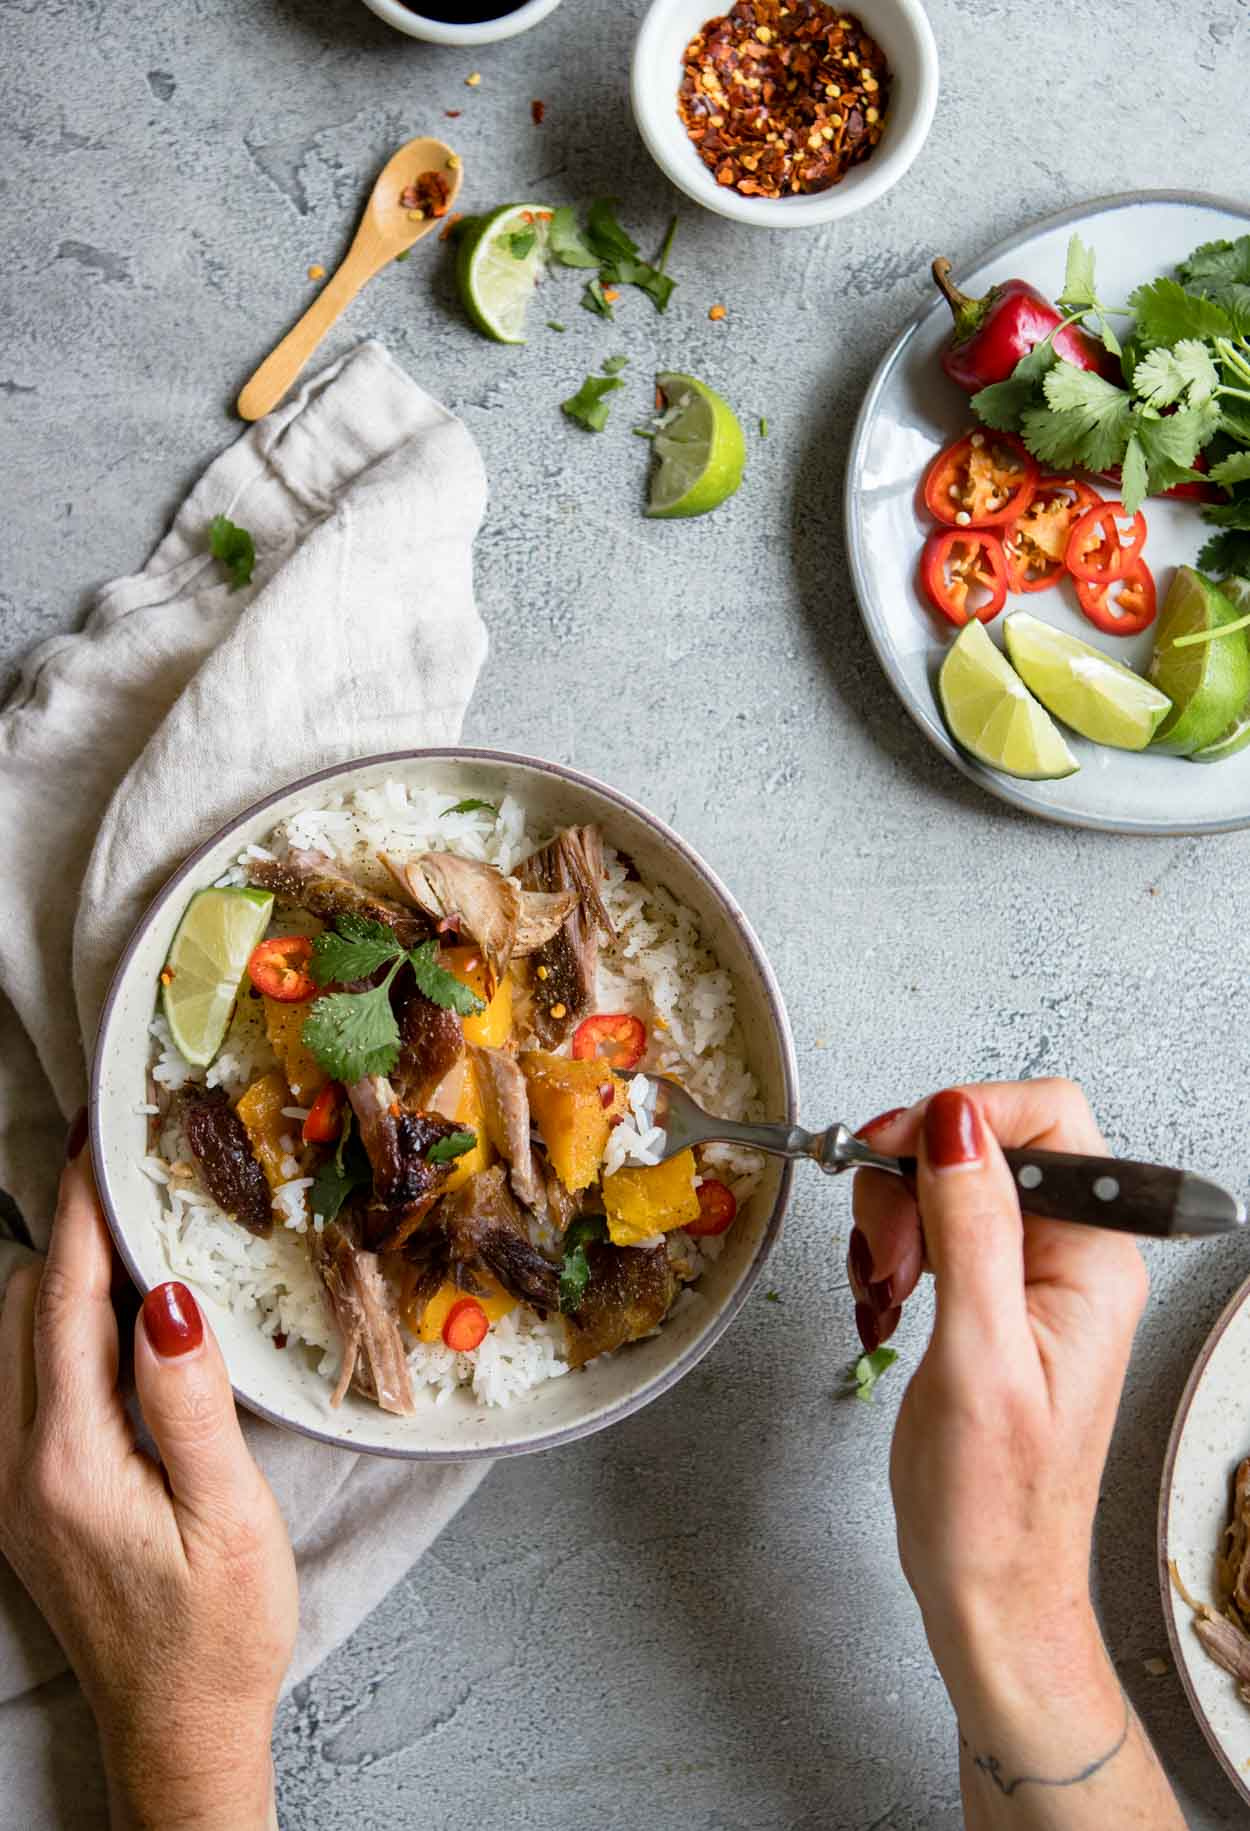 woman's hand holding a round bowl filled with rice and braised Asian pork and topped with garnishes